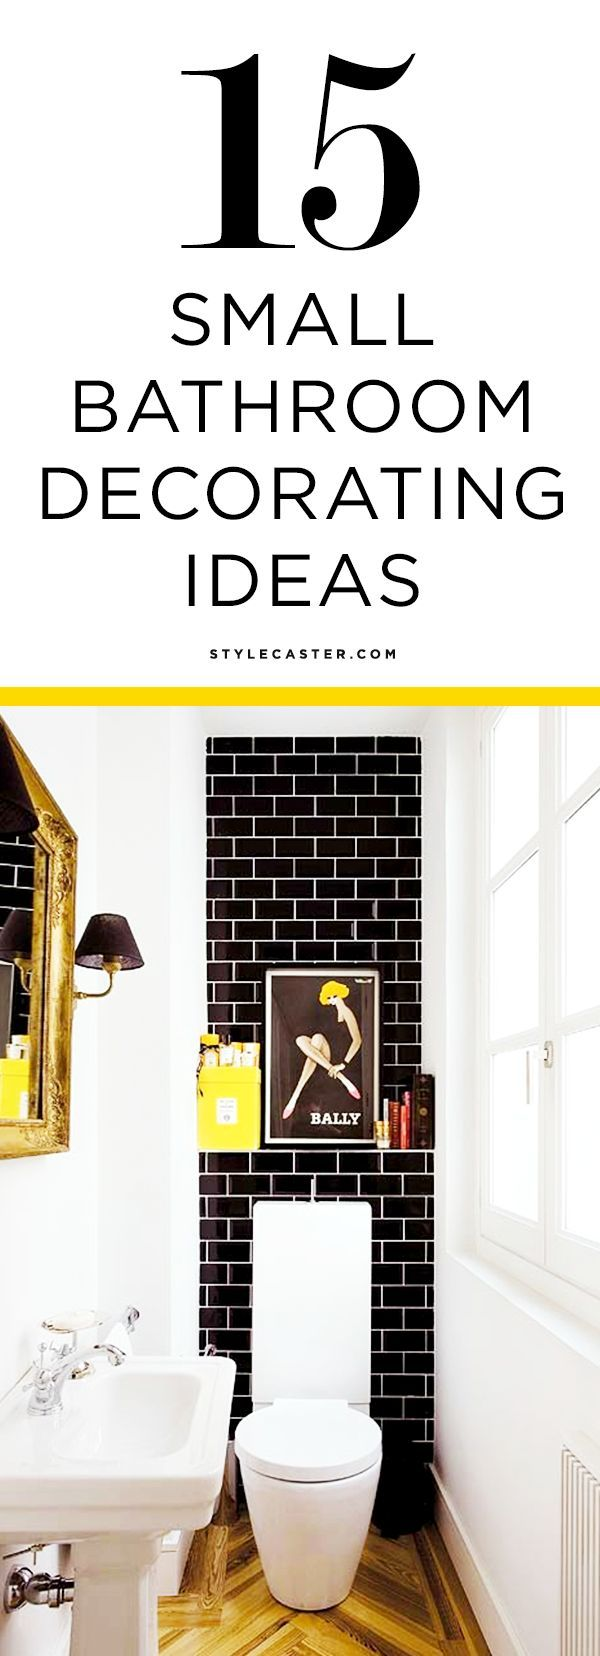 15 incredible small bathroom decorating ideas cleaning white walls 15 gorgeous small bathroom decorating ideas clean white walls black subway tiles and dailygadgetfo Images